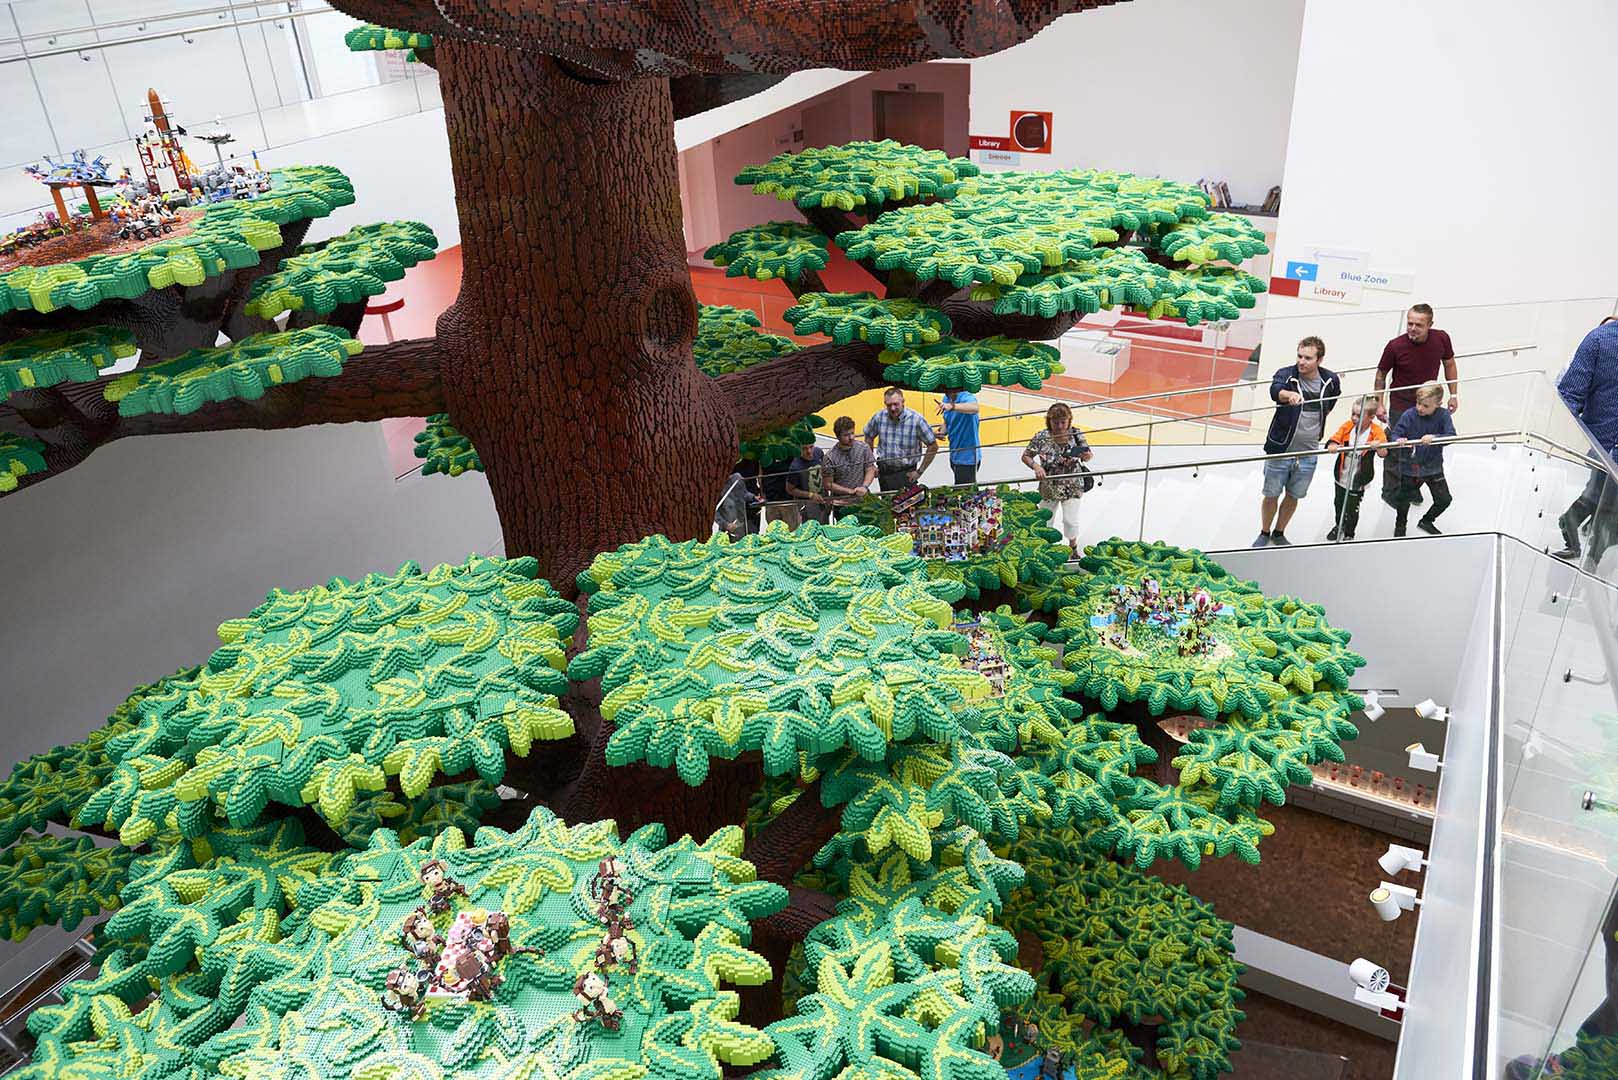 The Tree of Creativity is the largest and most complex structure ever built in LEGO bricks. It represents the LEGO Group's journey from the early days when LEGO bricks were made of wood – the stem – to the future: the top of the tree is unfinished, and a crane continues the journey upwards. LEGO House